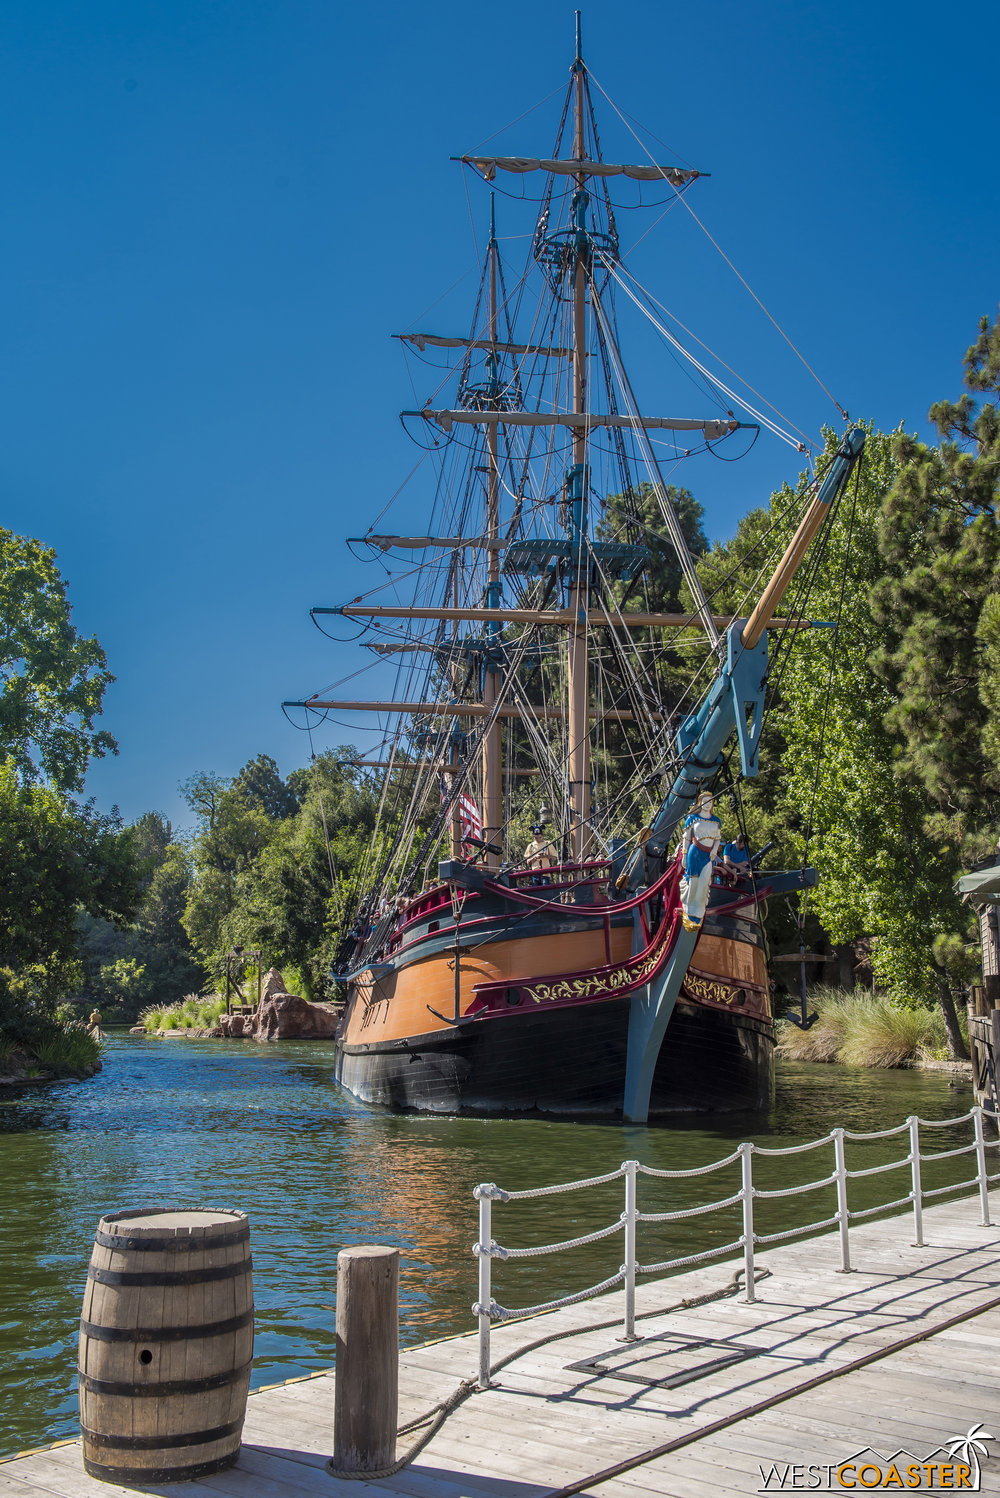 It starts operation later and ends sooner than the Mark Twain, but it's sailing around Tom Sawyer Island!